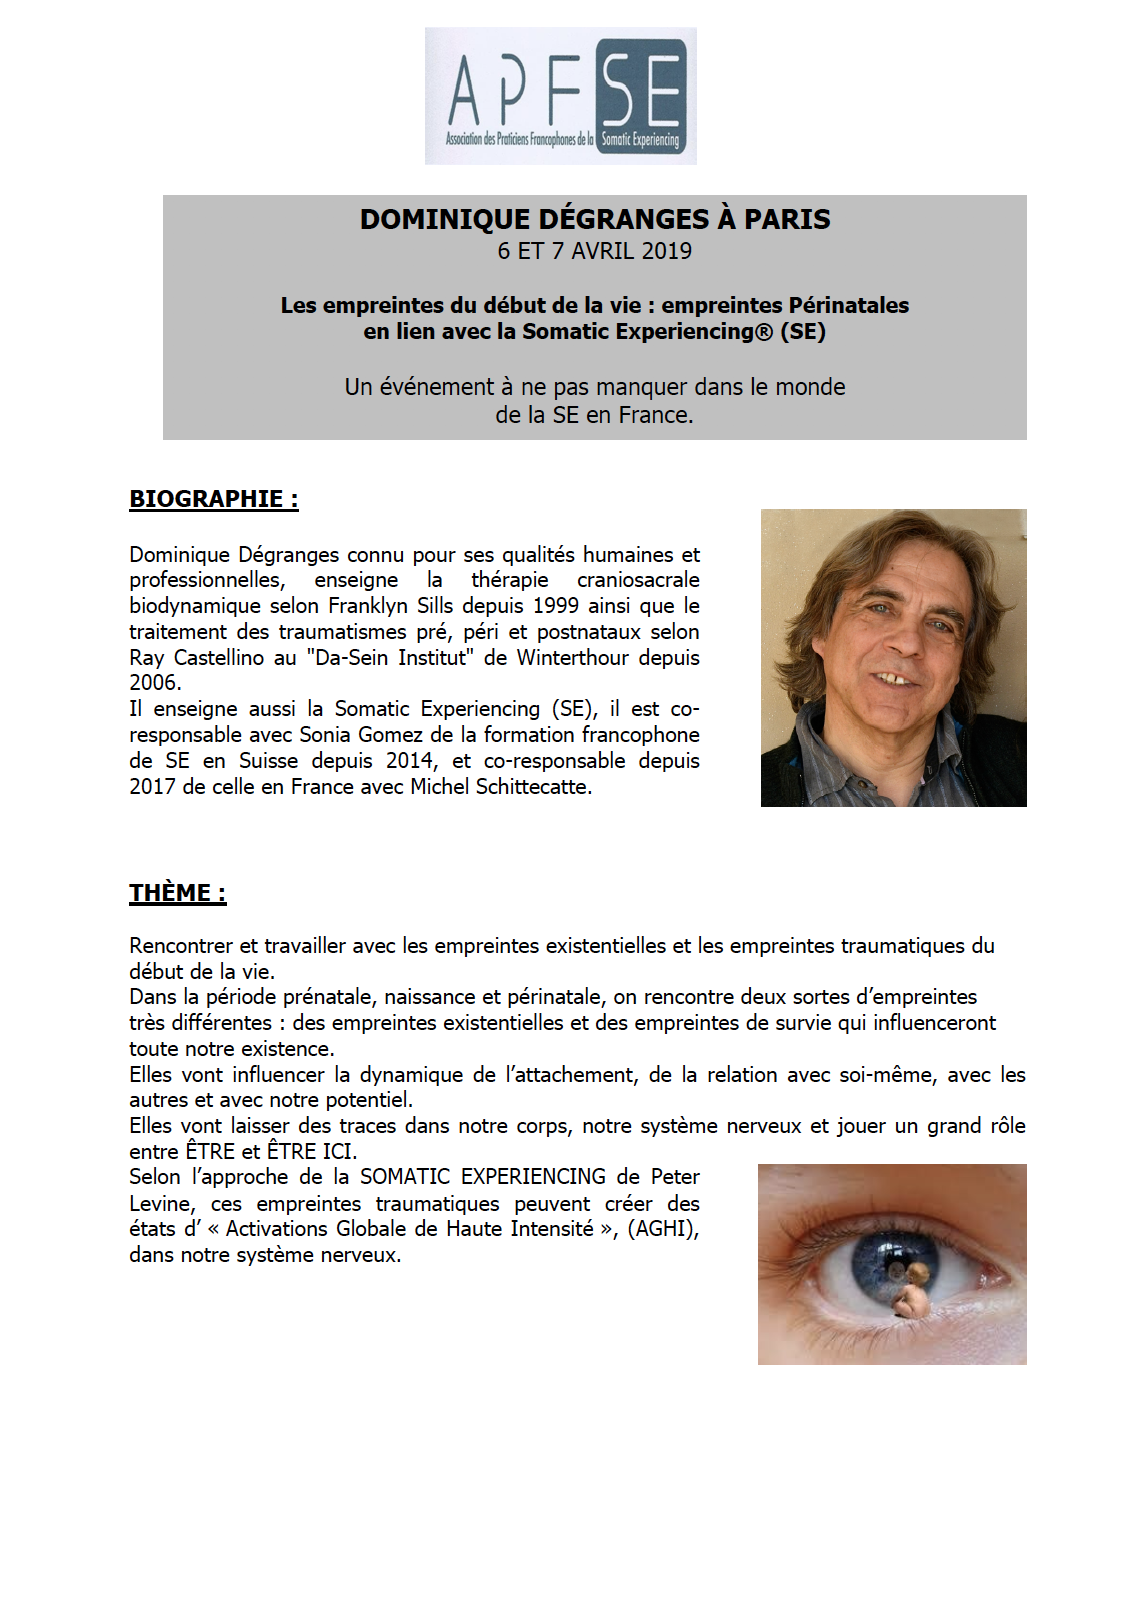 STAGE COMPLET – Formation de Dominique Dégranges à Paris les 6 et 7 avril 2019